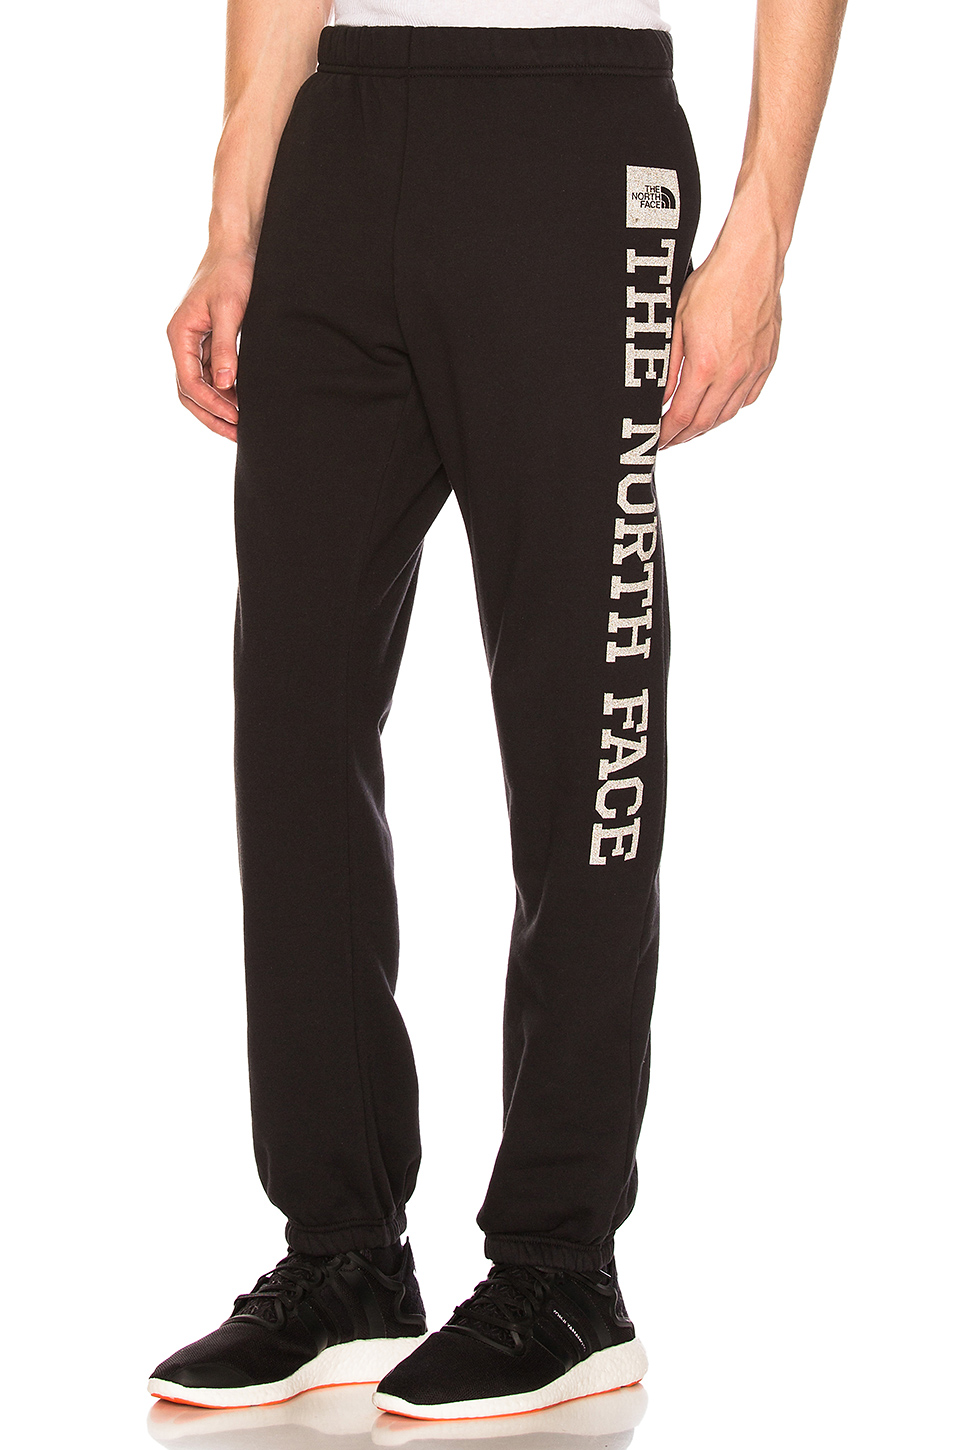 The North Face Reflective Never Stop Pant in TNF Black